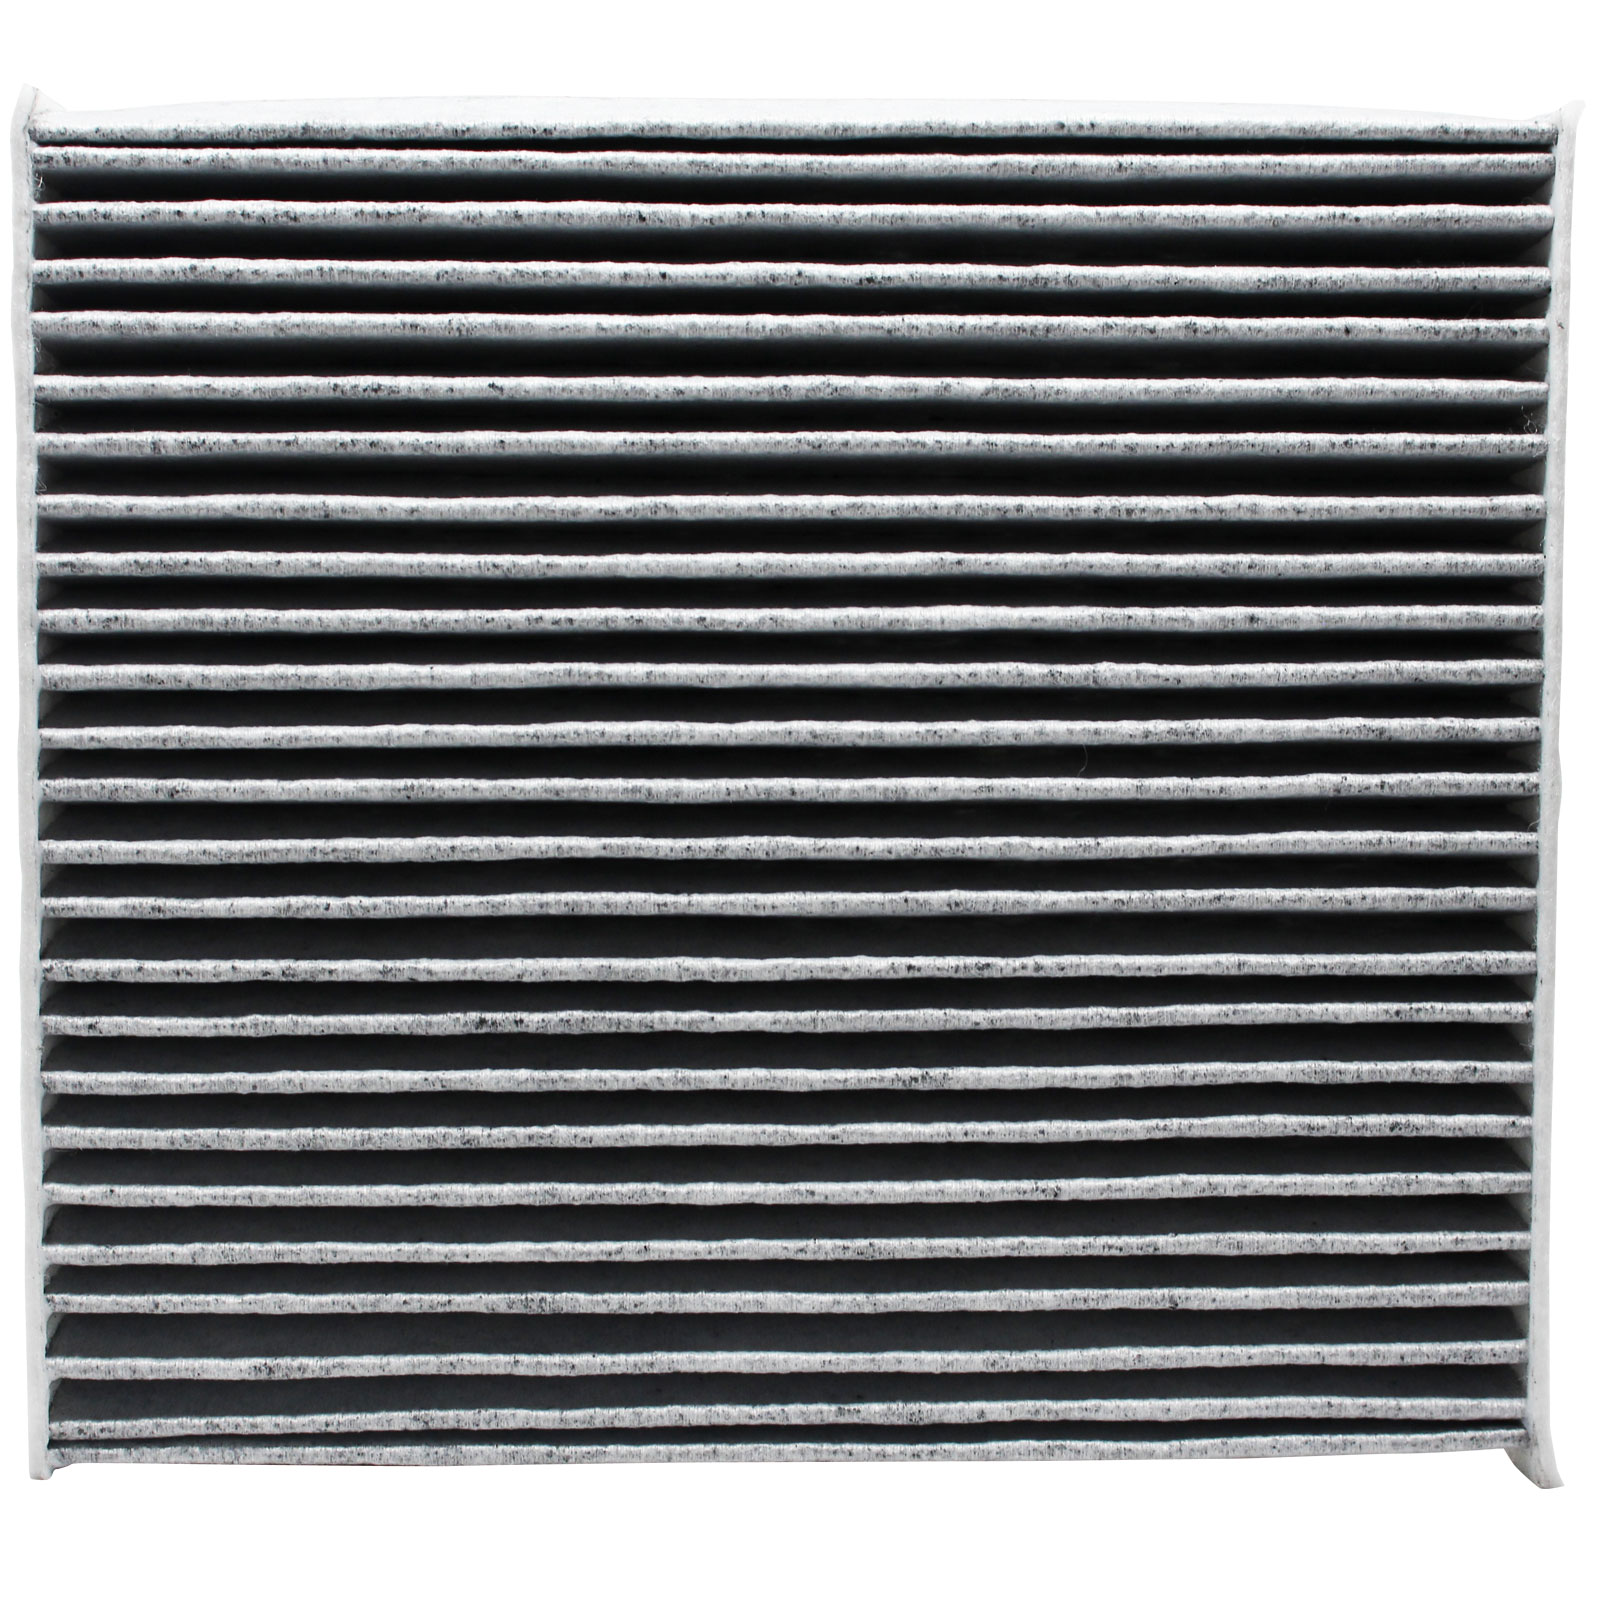 4-Pack Replacement Cabin Air Filter for 2007 Lexus GS 430 V8 4.3L 4293cc Car/Automotive - Activated Carbon, ACF-10285 - image 1 of 4